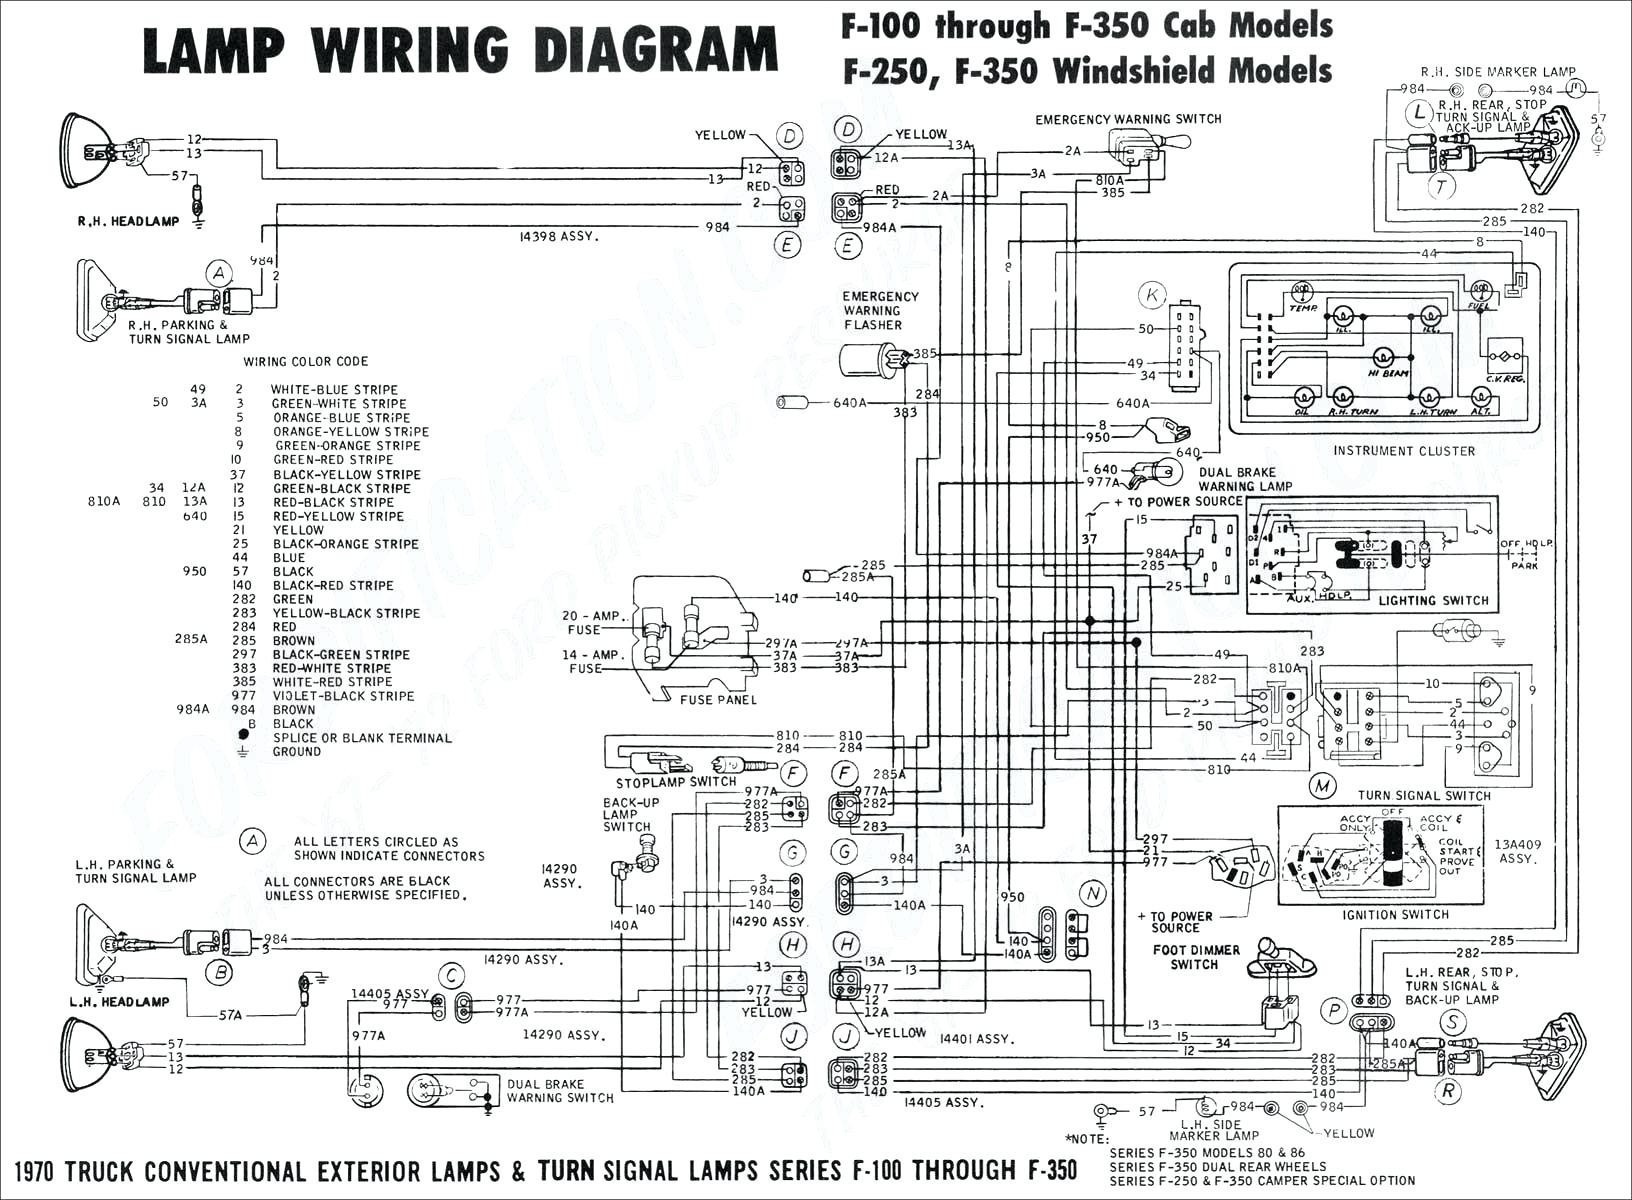 2006 F150 Engine Diagram ford F150 Engine Diagram Another Blog About Wiring Diagram • Of 2006 F150 Engine Diagram Download ford Trucks Wiring Diagrams ford F150 Wiring Diagrams Best